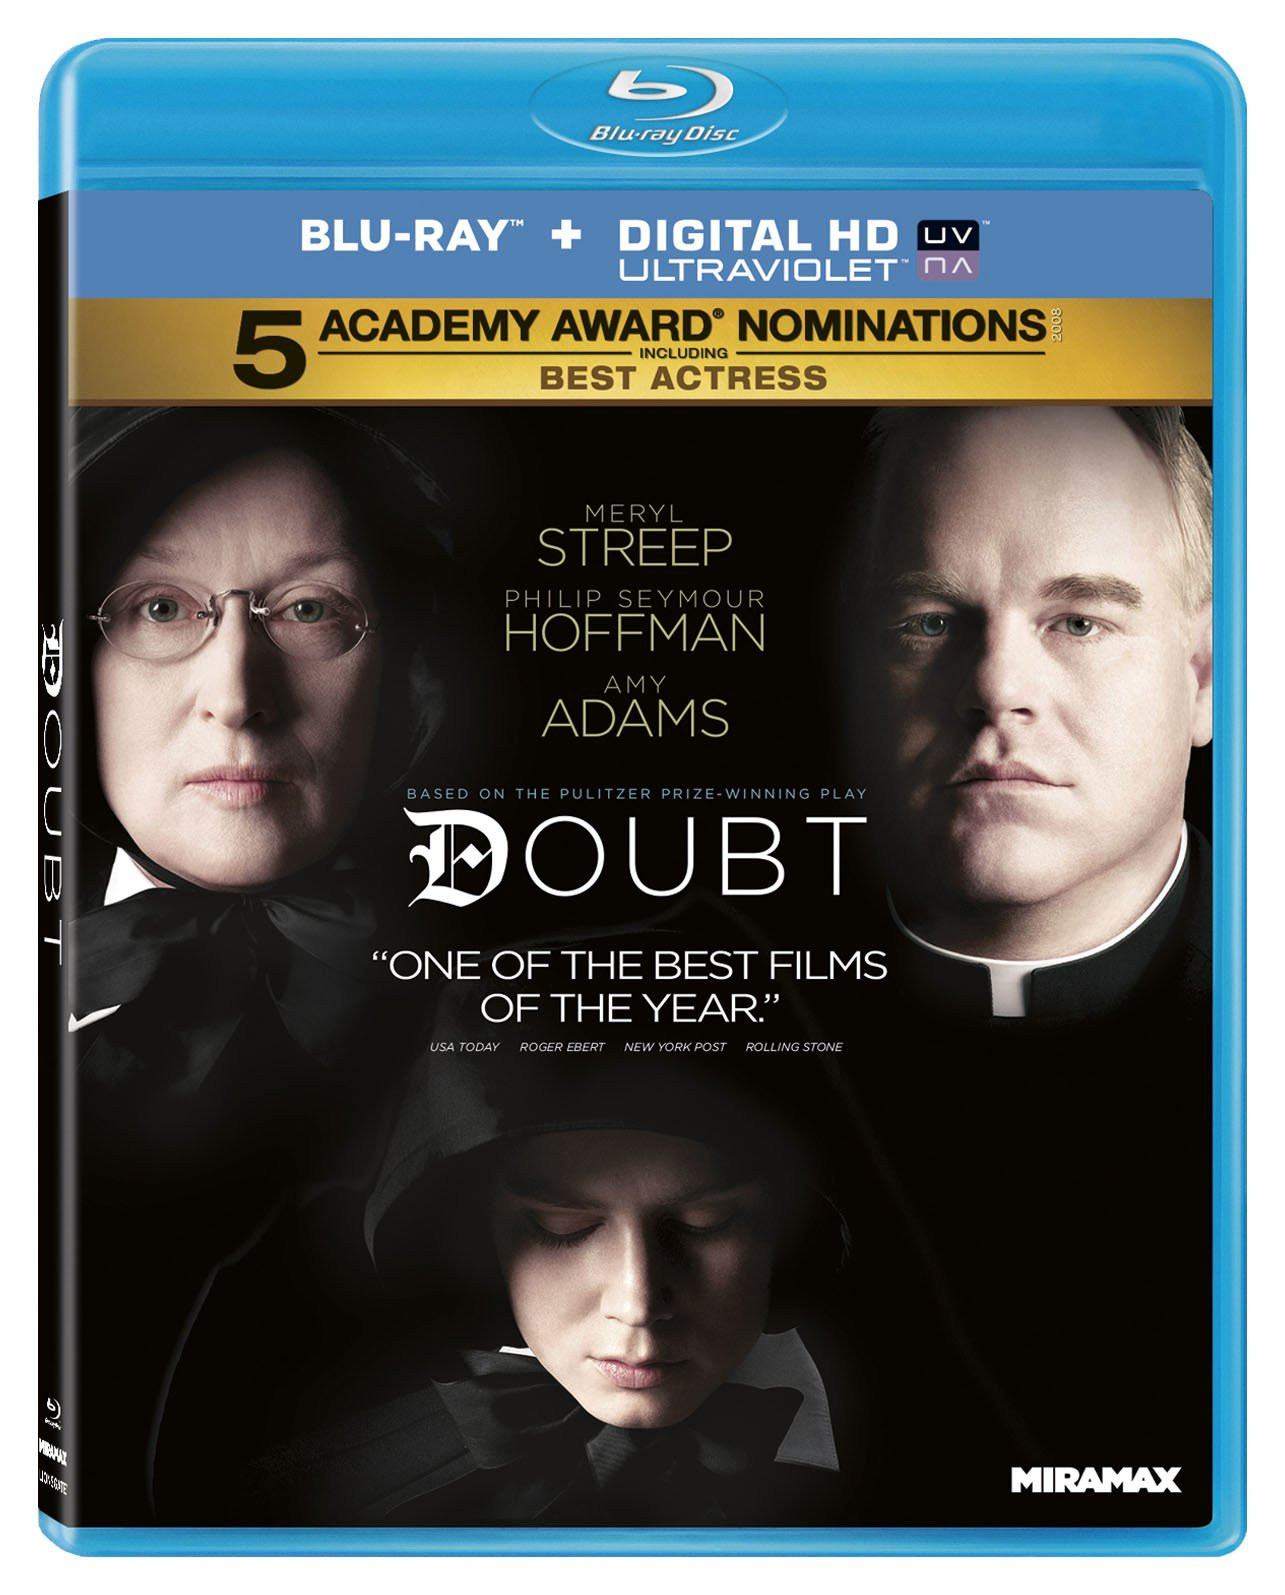 Blu-ray : Doubt (Widescreen, Dolby, AC-3, Digital Theater System)